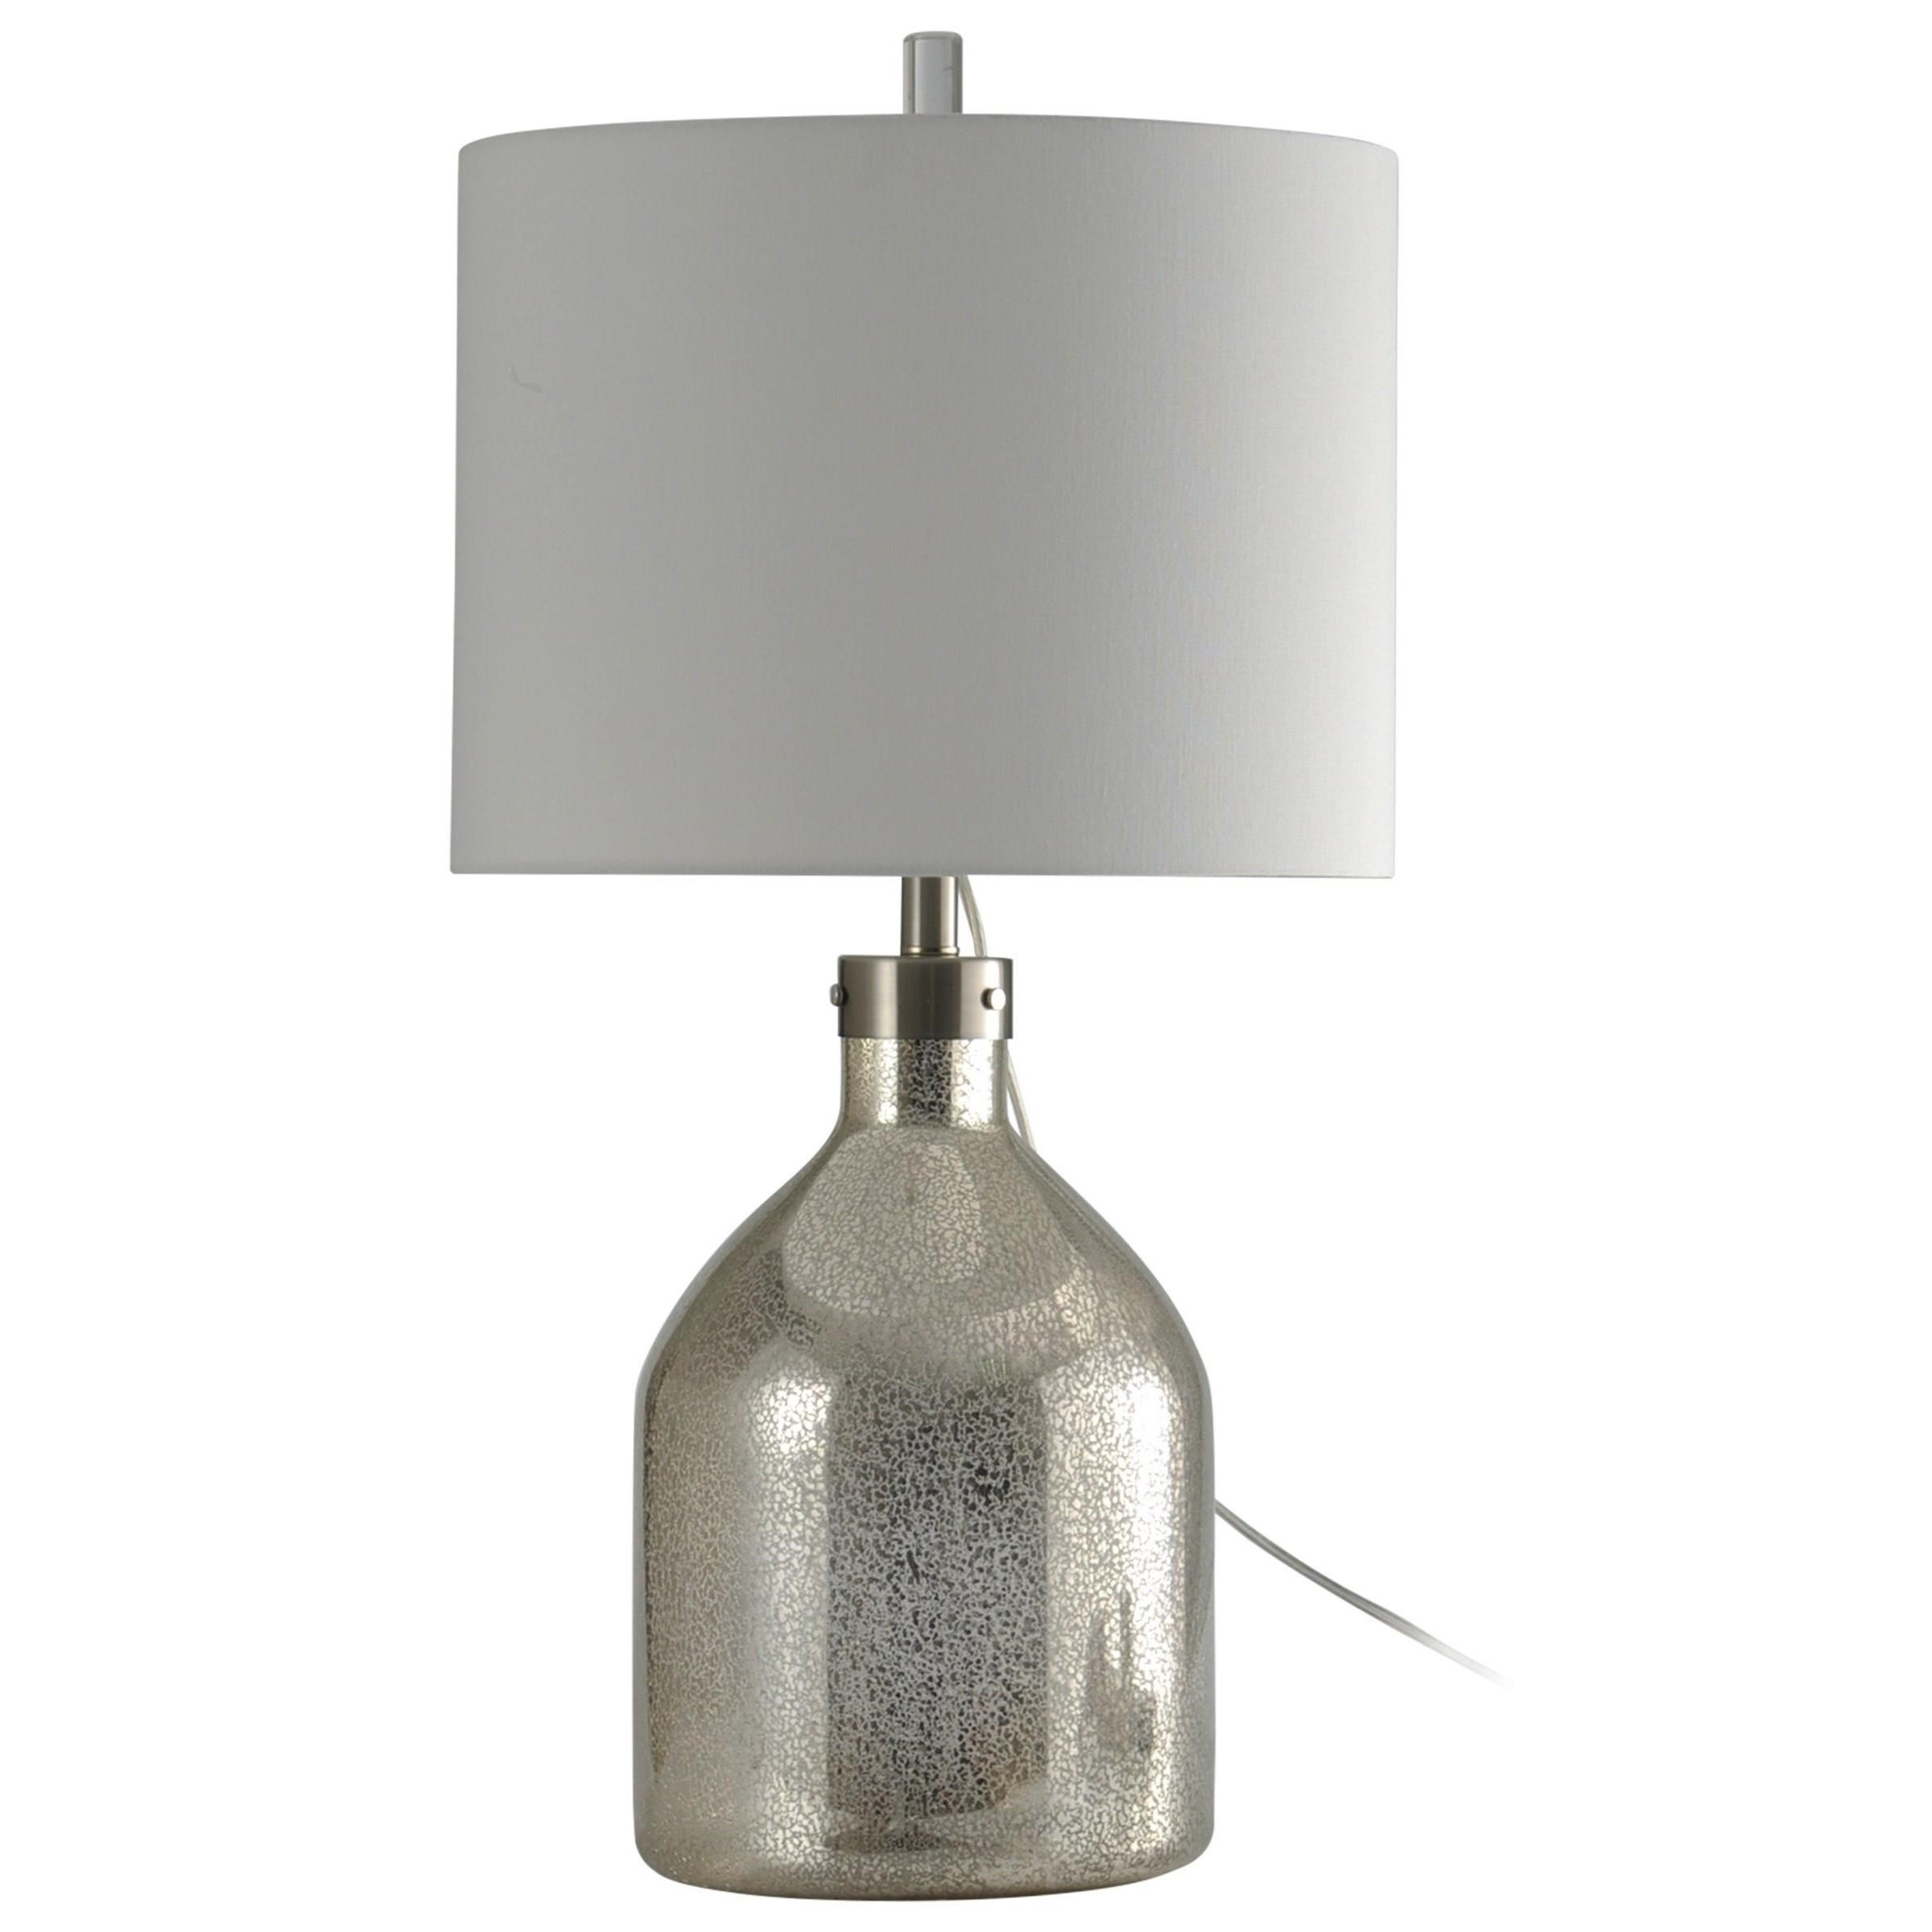 Lamps Mercury Glass Table Lamp by StyleCraft at Dream Home Interiors